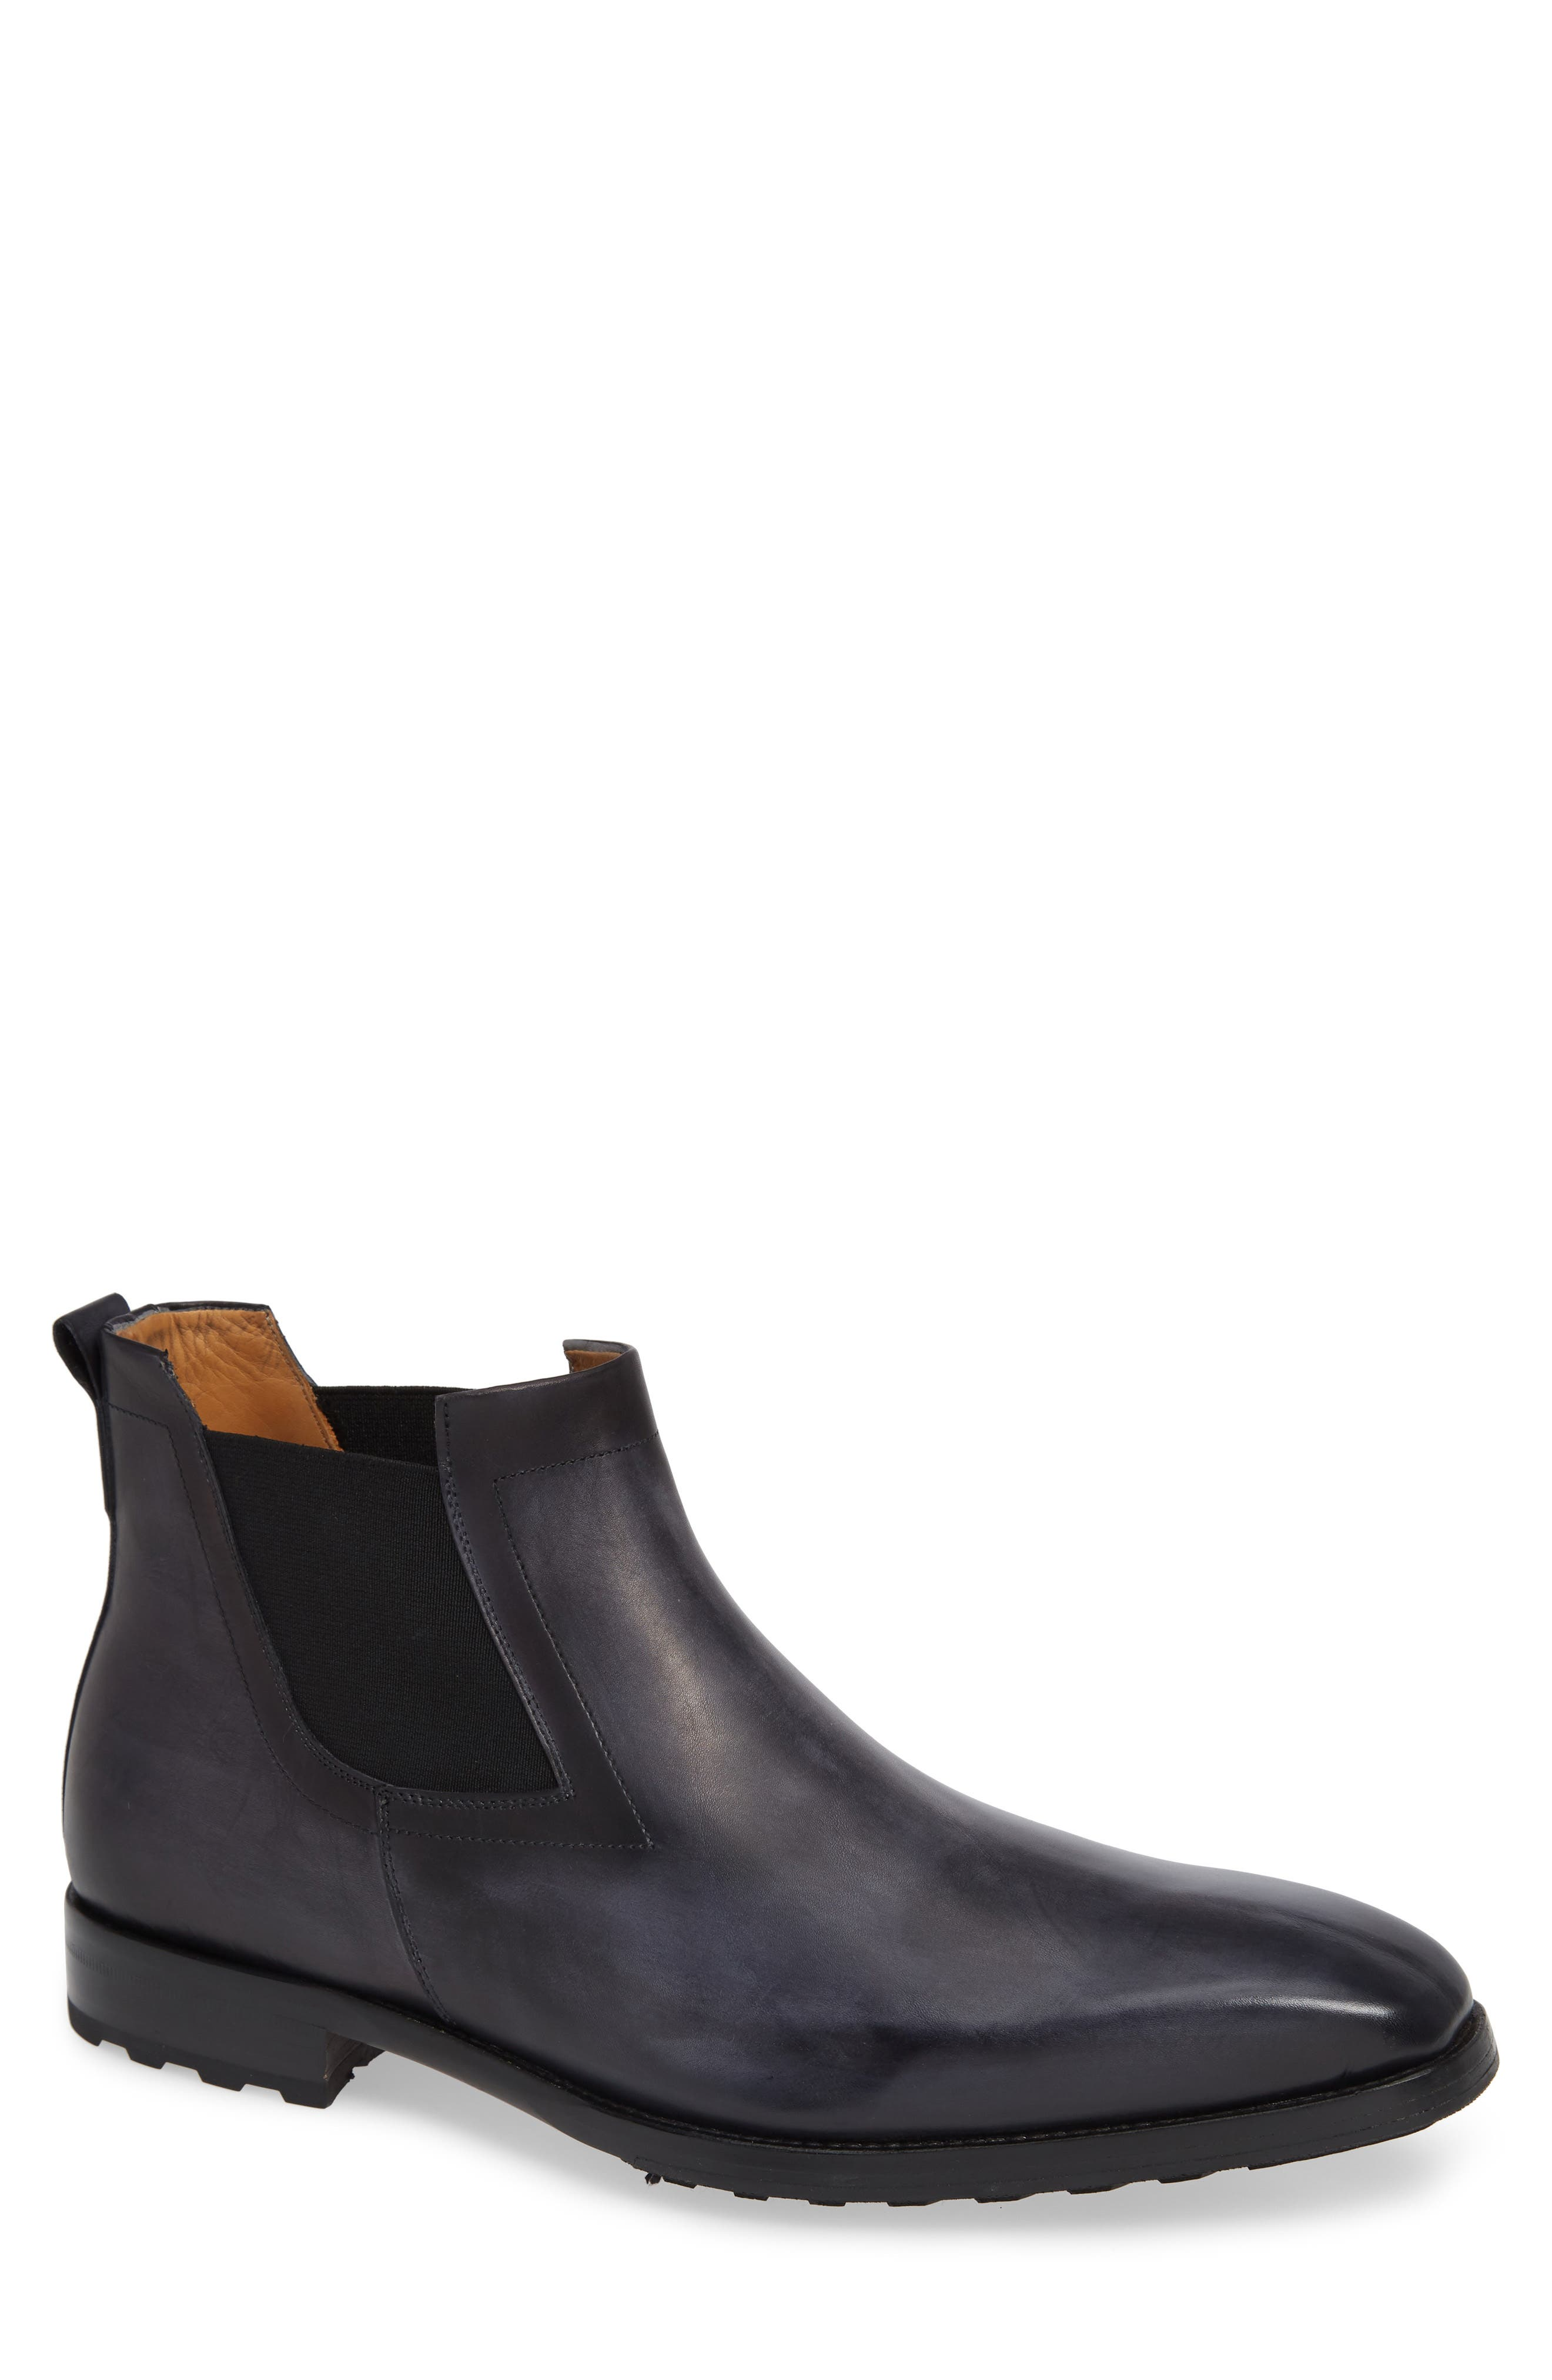 Mezlan Omar Lugged Chelsea Boot, Grey